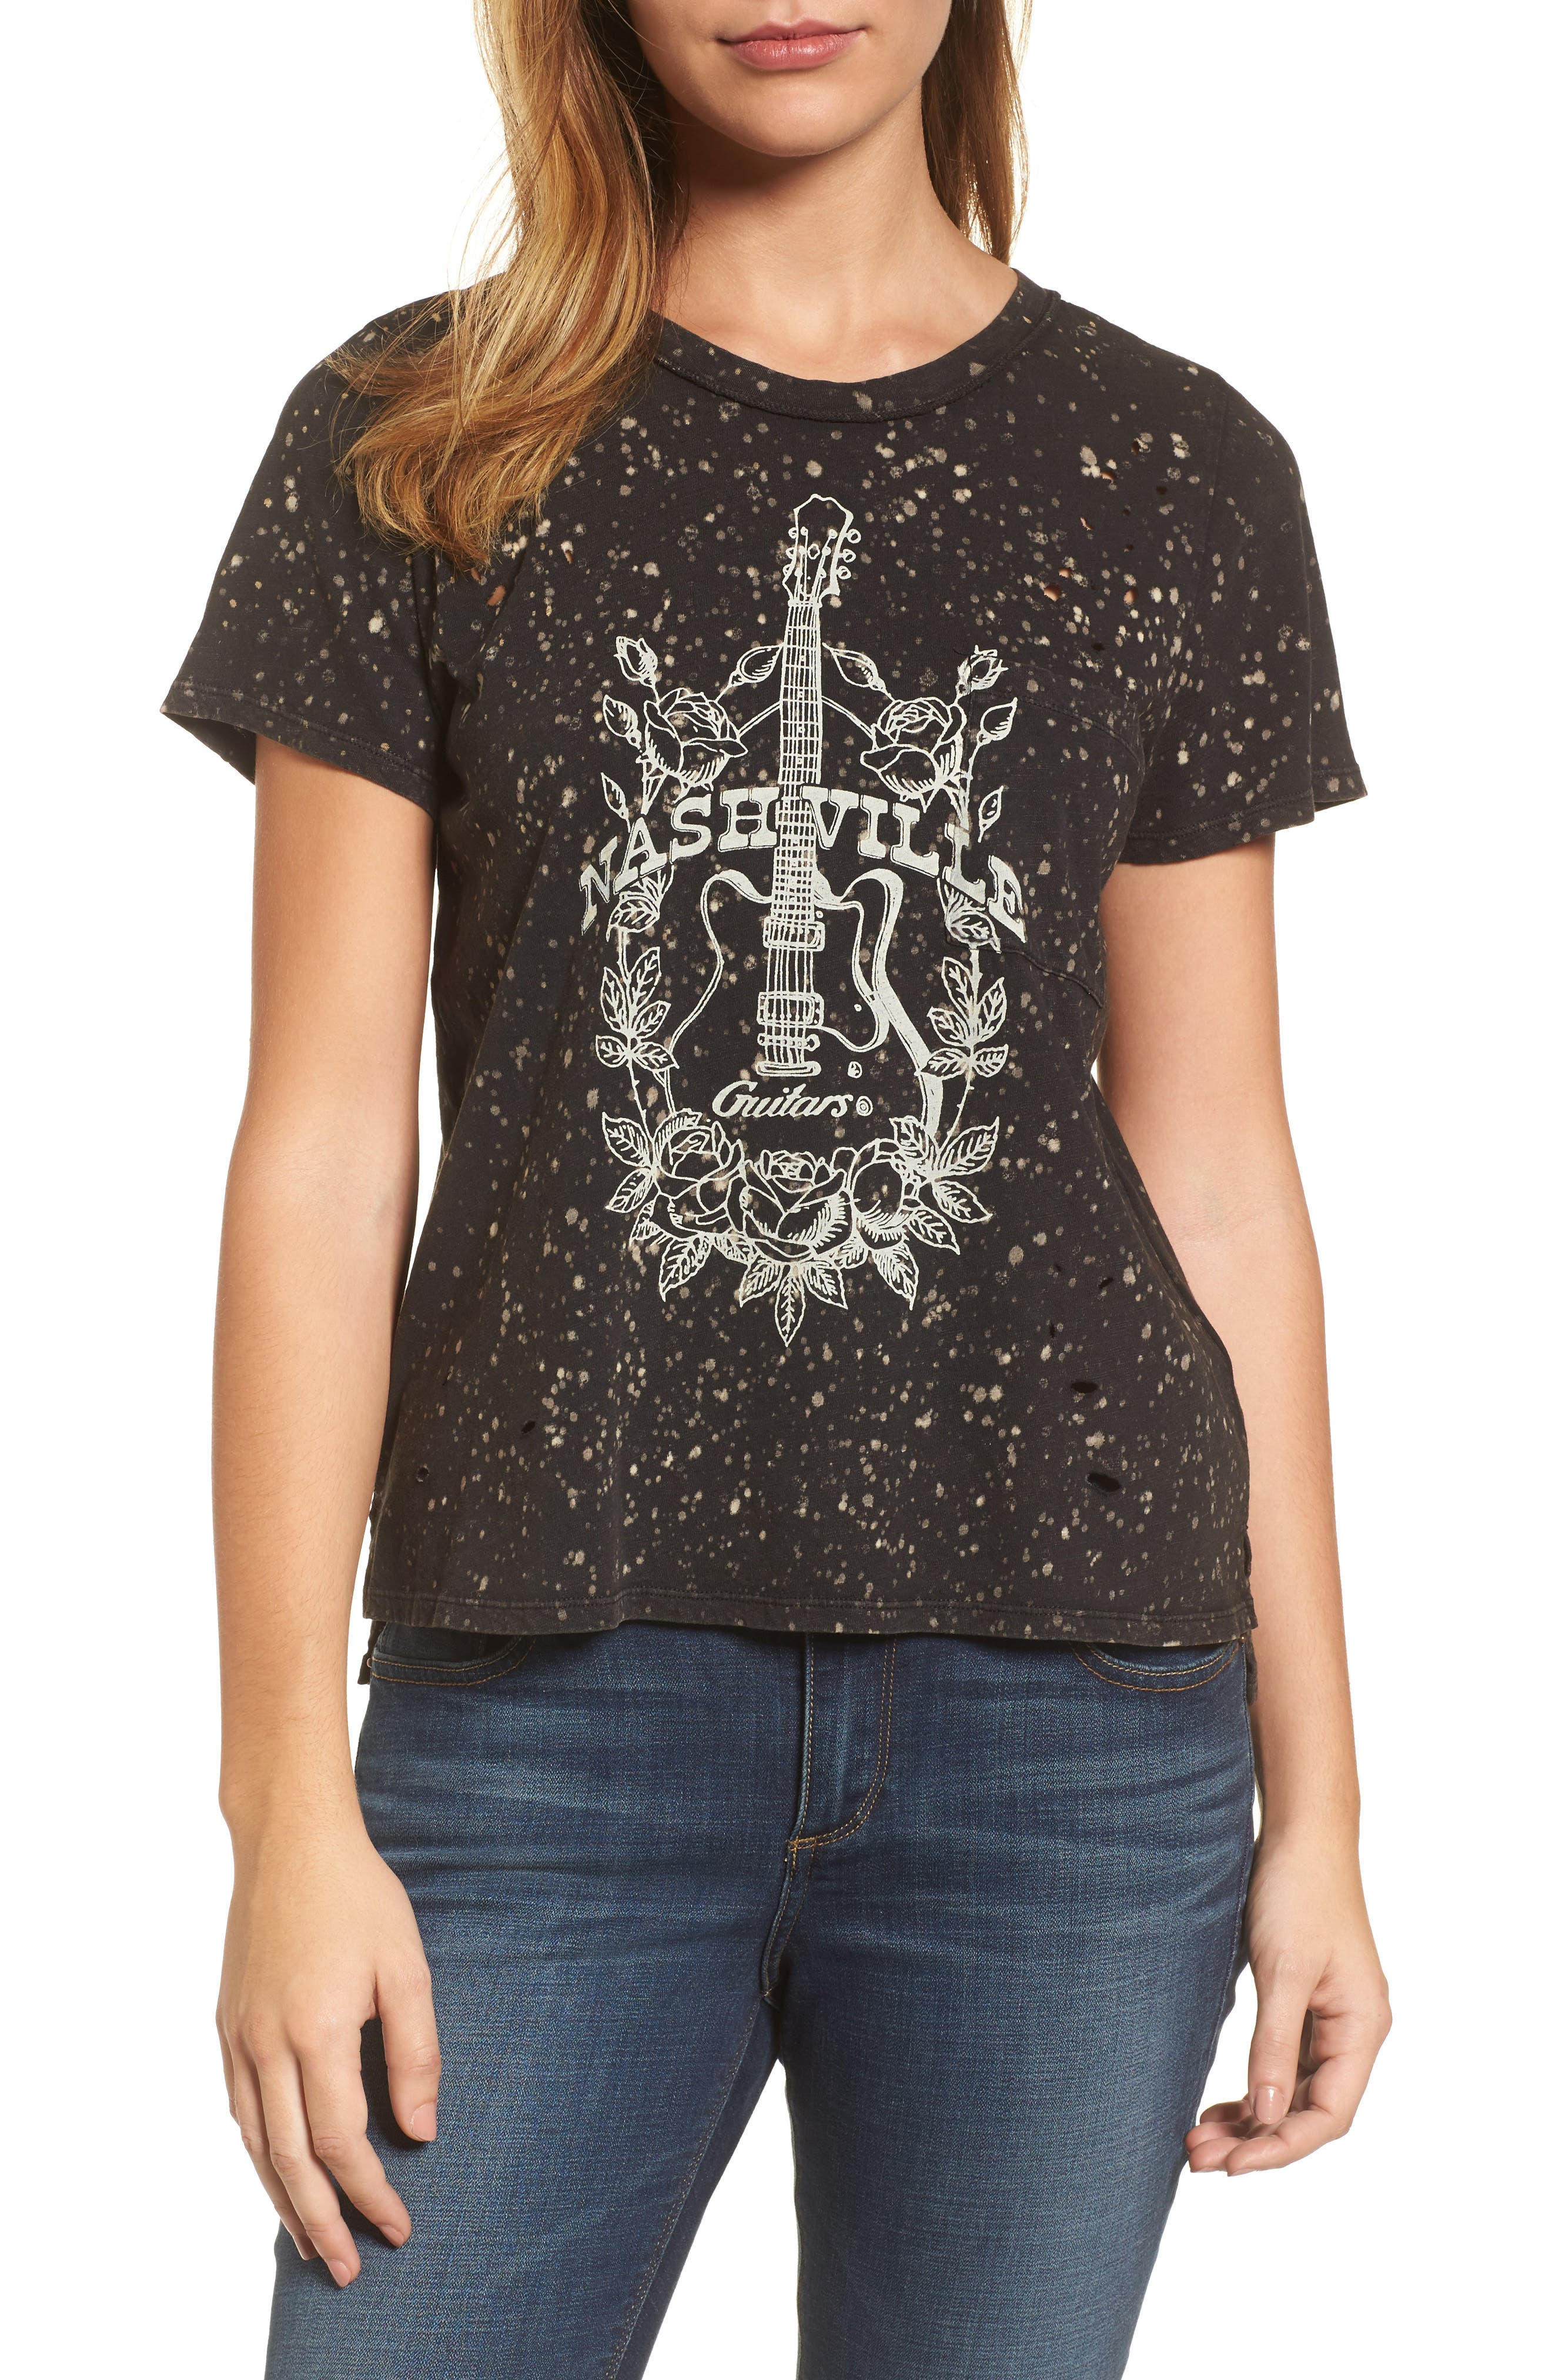 Nashville Guitars Distressed Tee,                         Main,                         color, Lucky Black